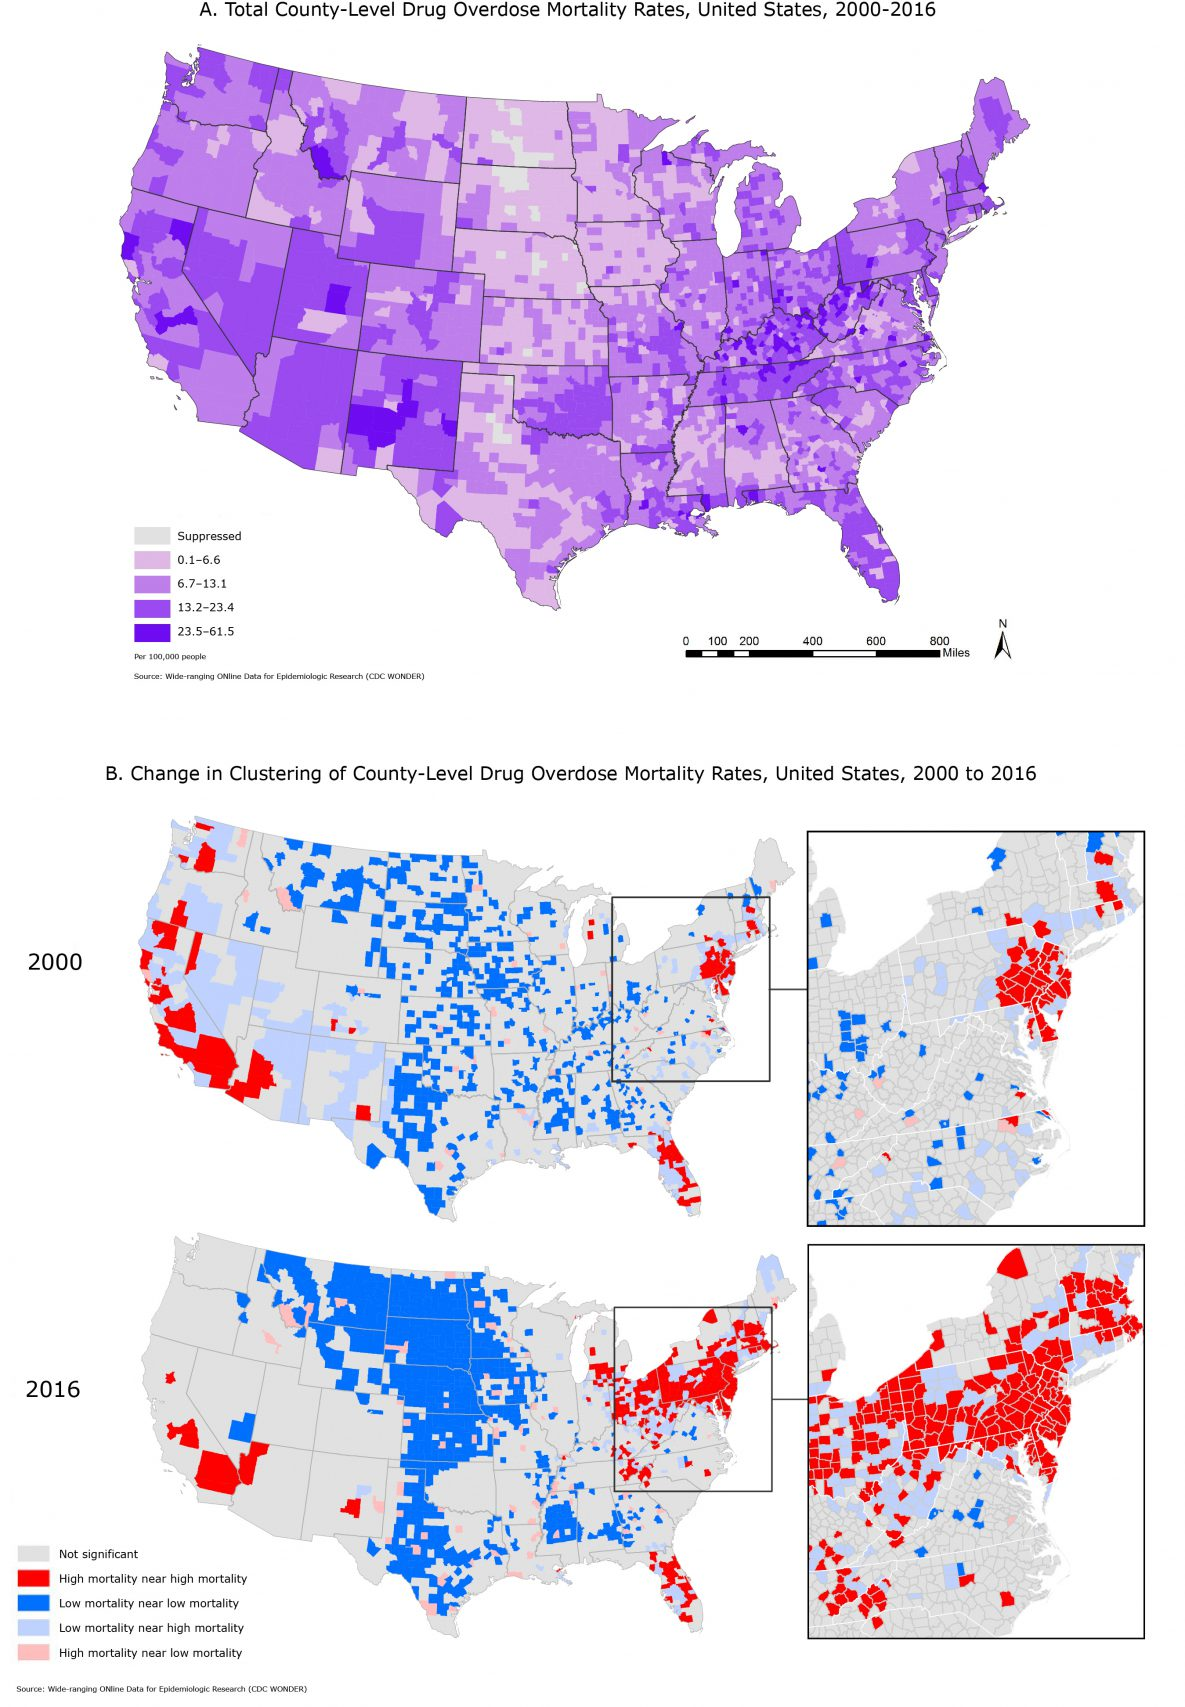 Map A displays all drug overdose mortality in contiguous US counties for 2000–2016. Overall, observed mortality rates were higher in Appalachia and the Southwest. Map B displays clustering in US county-level drug overdose mortality in 2000 adjacent to drug overdose mortality in 2016 to visually compare the geographic change in drug overdose mortality. The magnified images suggest that counties with low mortality rates that are adjacent to those with high mortality rates may be at risk for increased deaths from drug overdose. The results highlight areas that are identified as significant clusters of drug related overdose mortality.